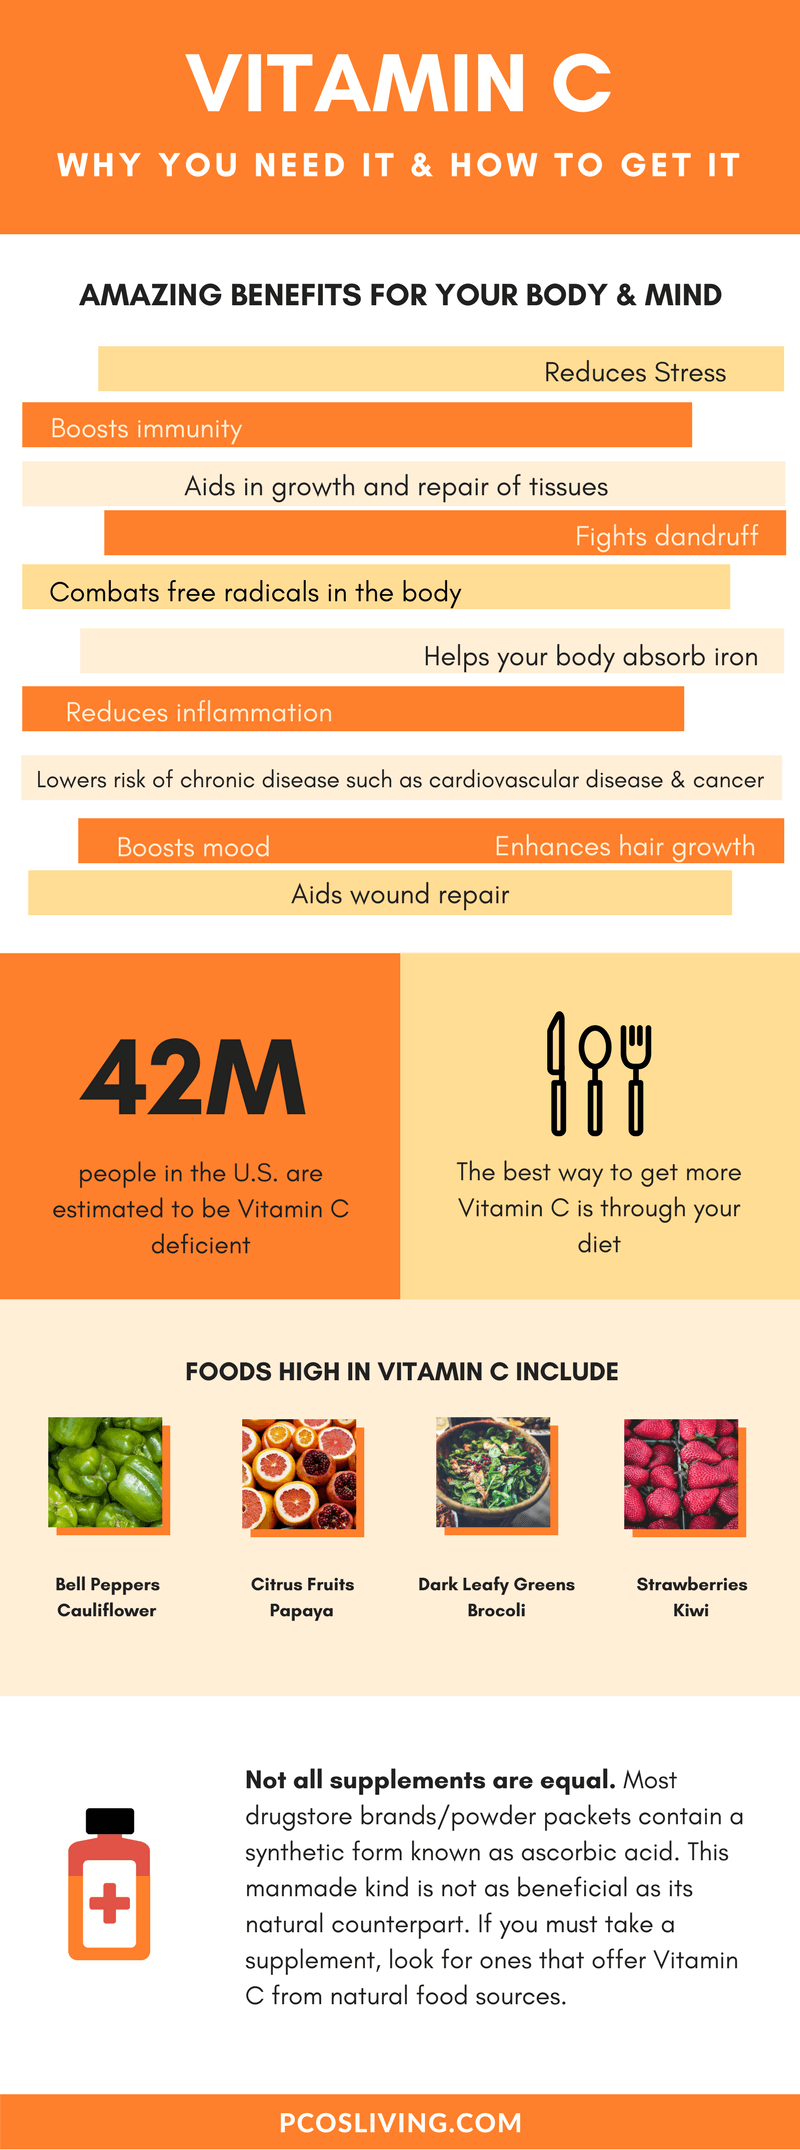 13 Amazing benefits of Vitamin C for Your Body & Mind. // Vitamin C Benefits // Foods Rich in Vitamin C // Best Vitamin C Supplements | PCOSLiving.com